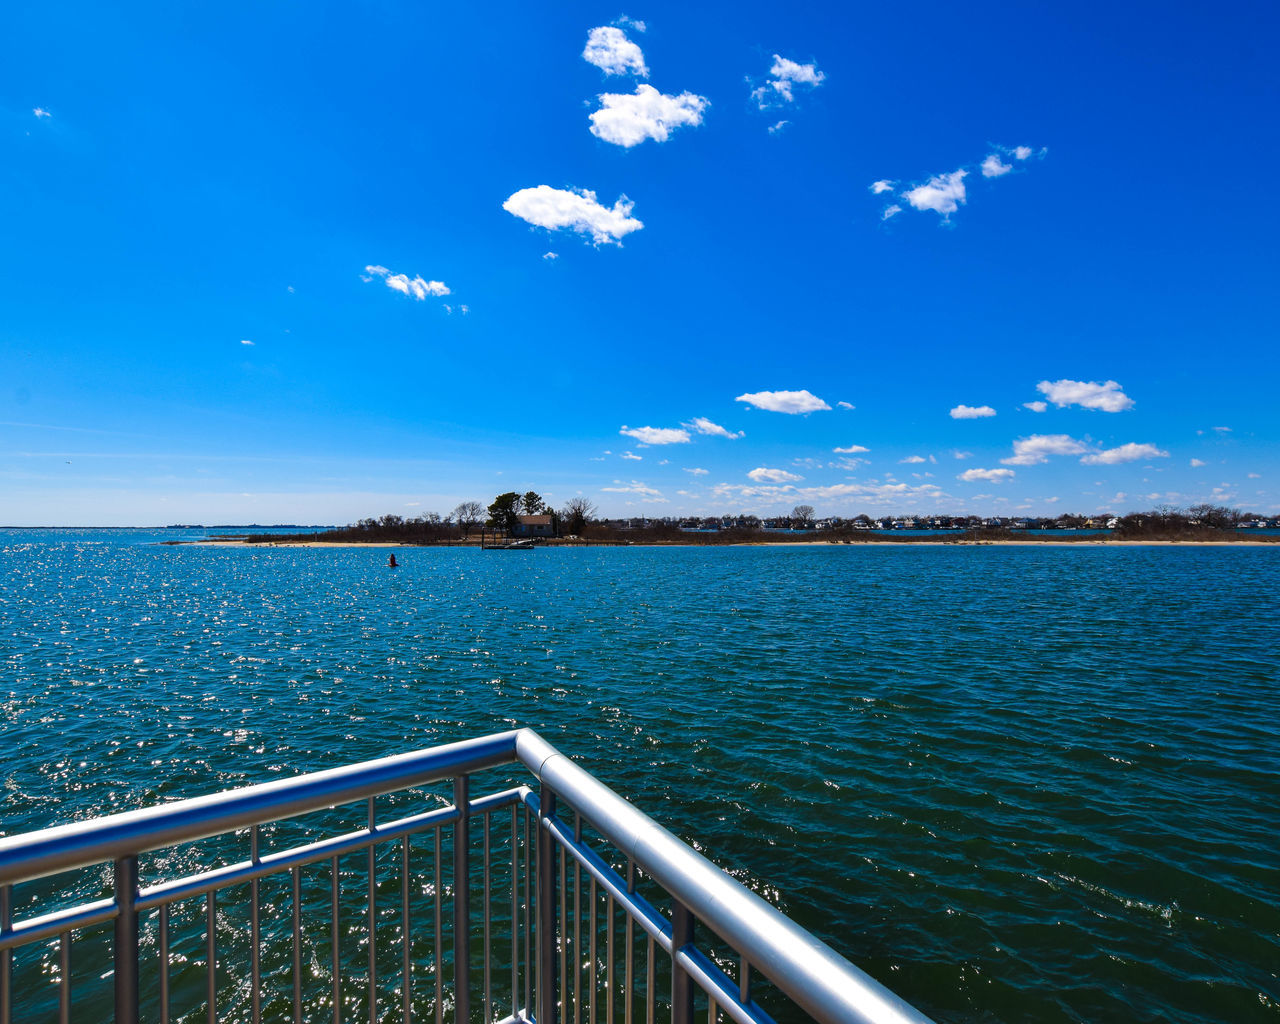 blue, sky, railing, water, cloud - sky, day, outdoors, nature, no people, scenics, sea, beauty in nature, tree